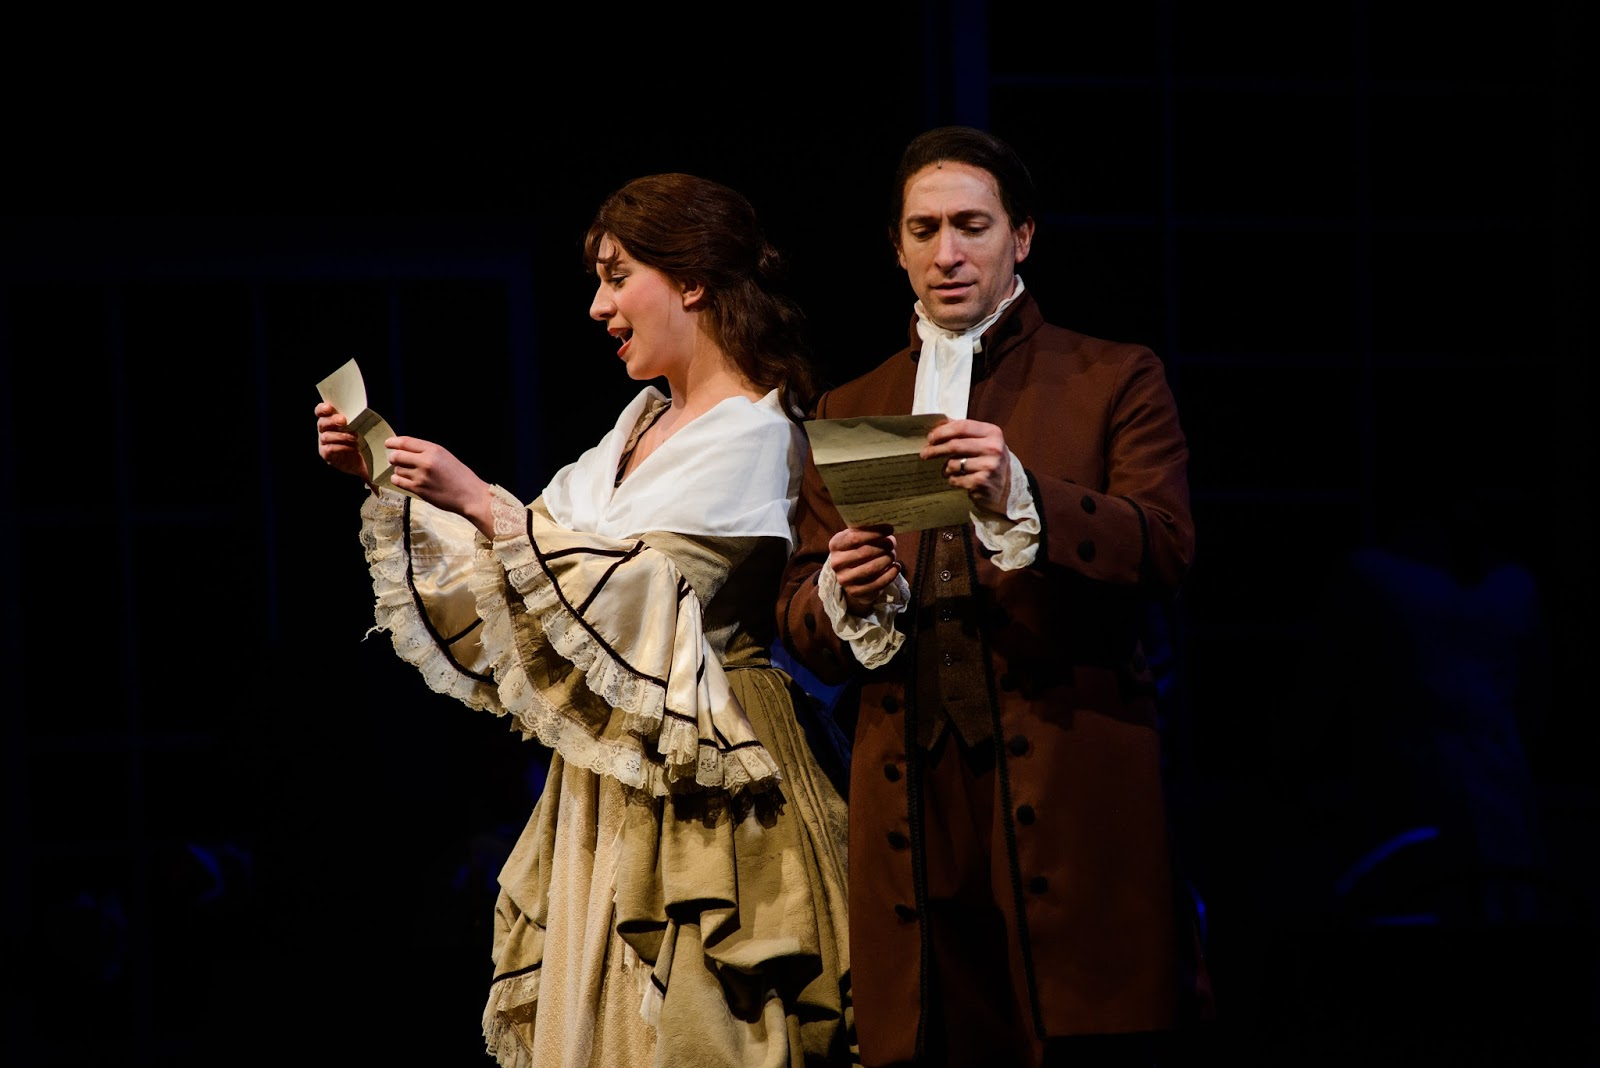 Ben Dibble as John Adams and Elyse Langley as Abigail in 1776 The Musical. Photo by Maura McConnell